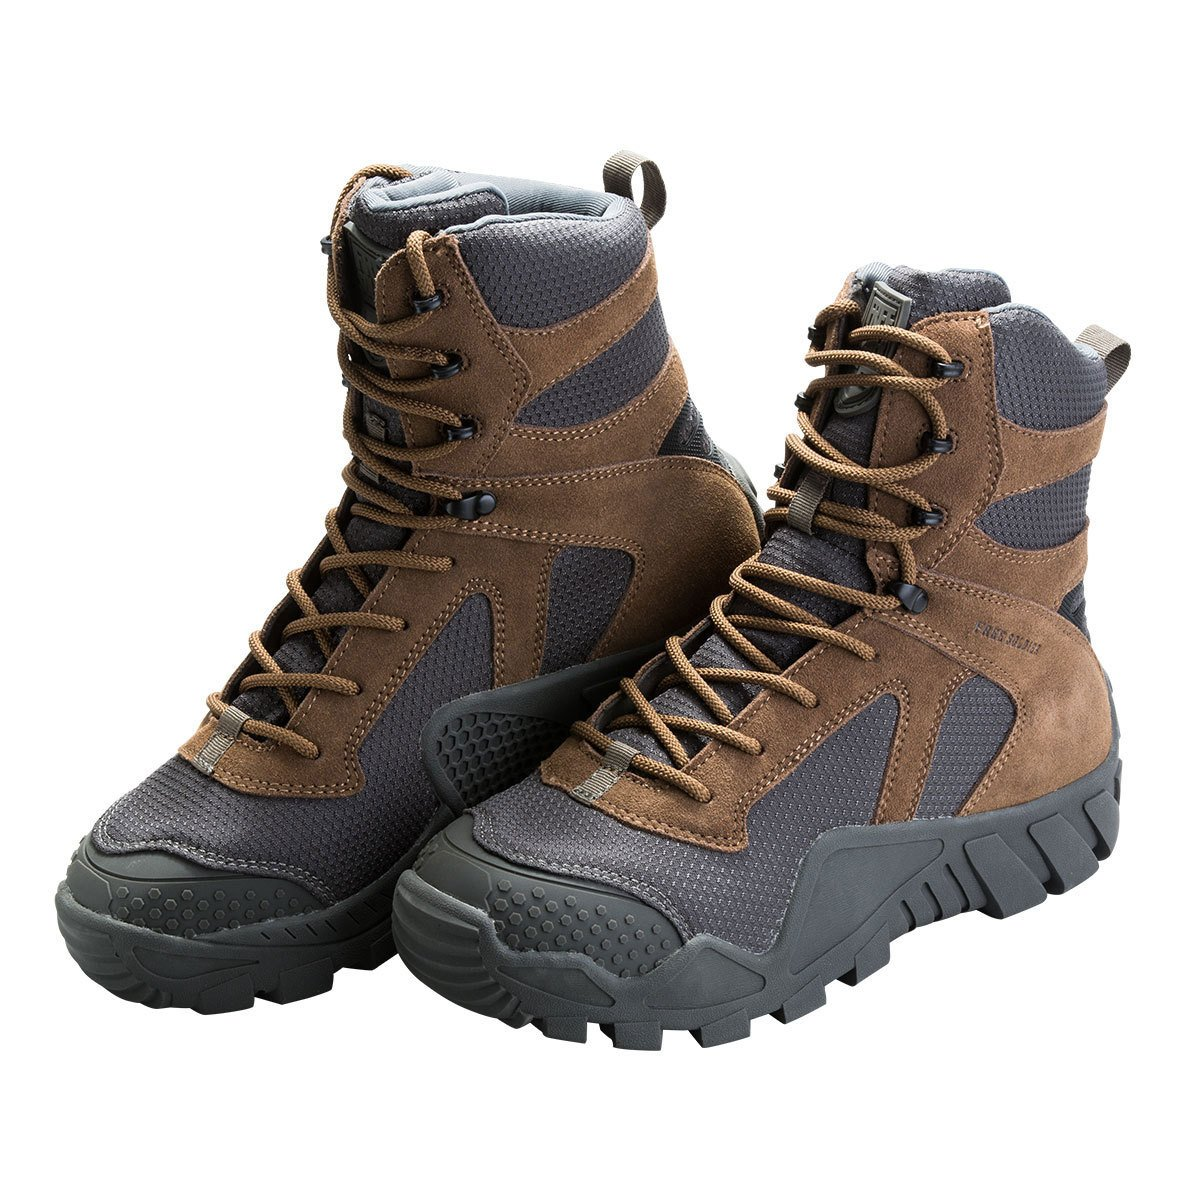 FREE SOLDIER Men's Boots All Terrain Hiking Shoes Suede Leather Hunting Tactical Boots nanjing yebao